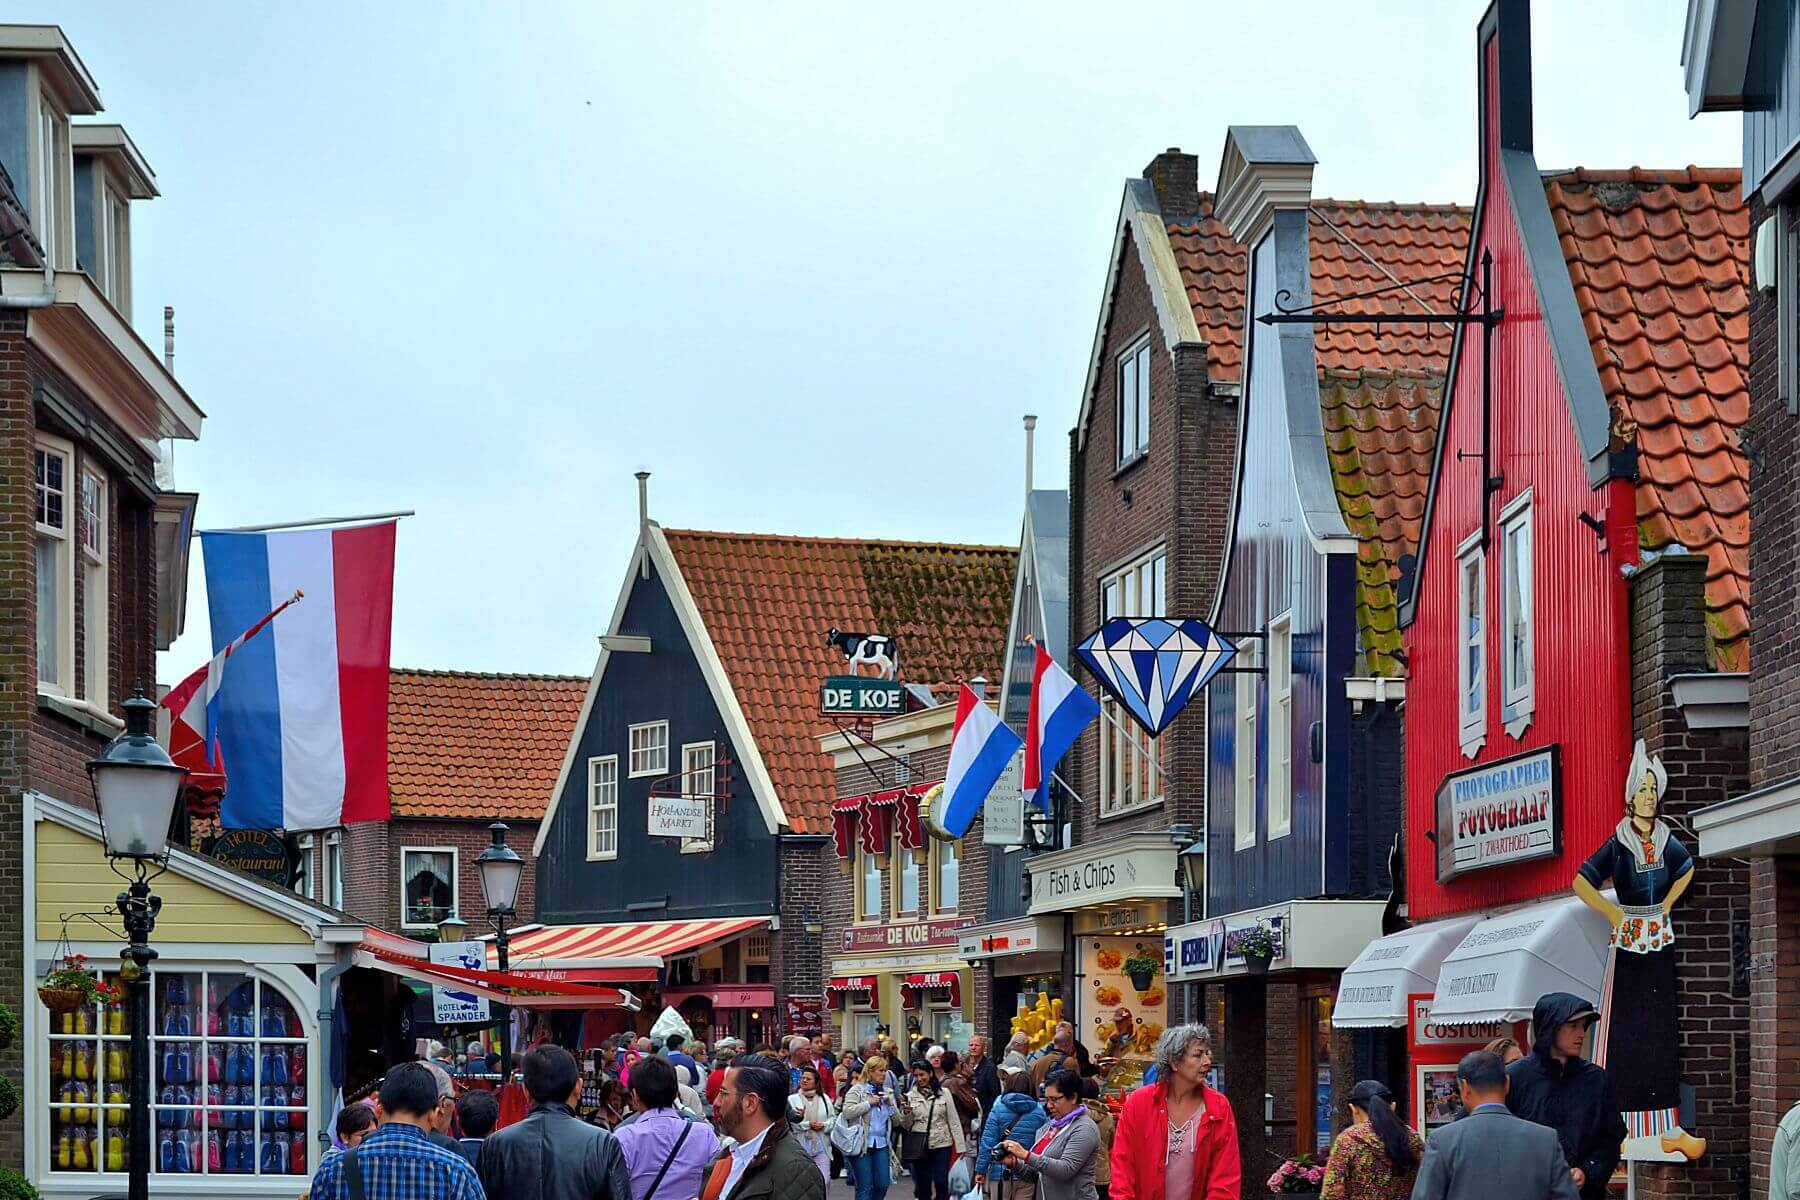 Promenade in Volendam. Taken by Juan Enrique Gilardi via Flickr.